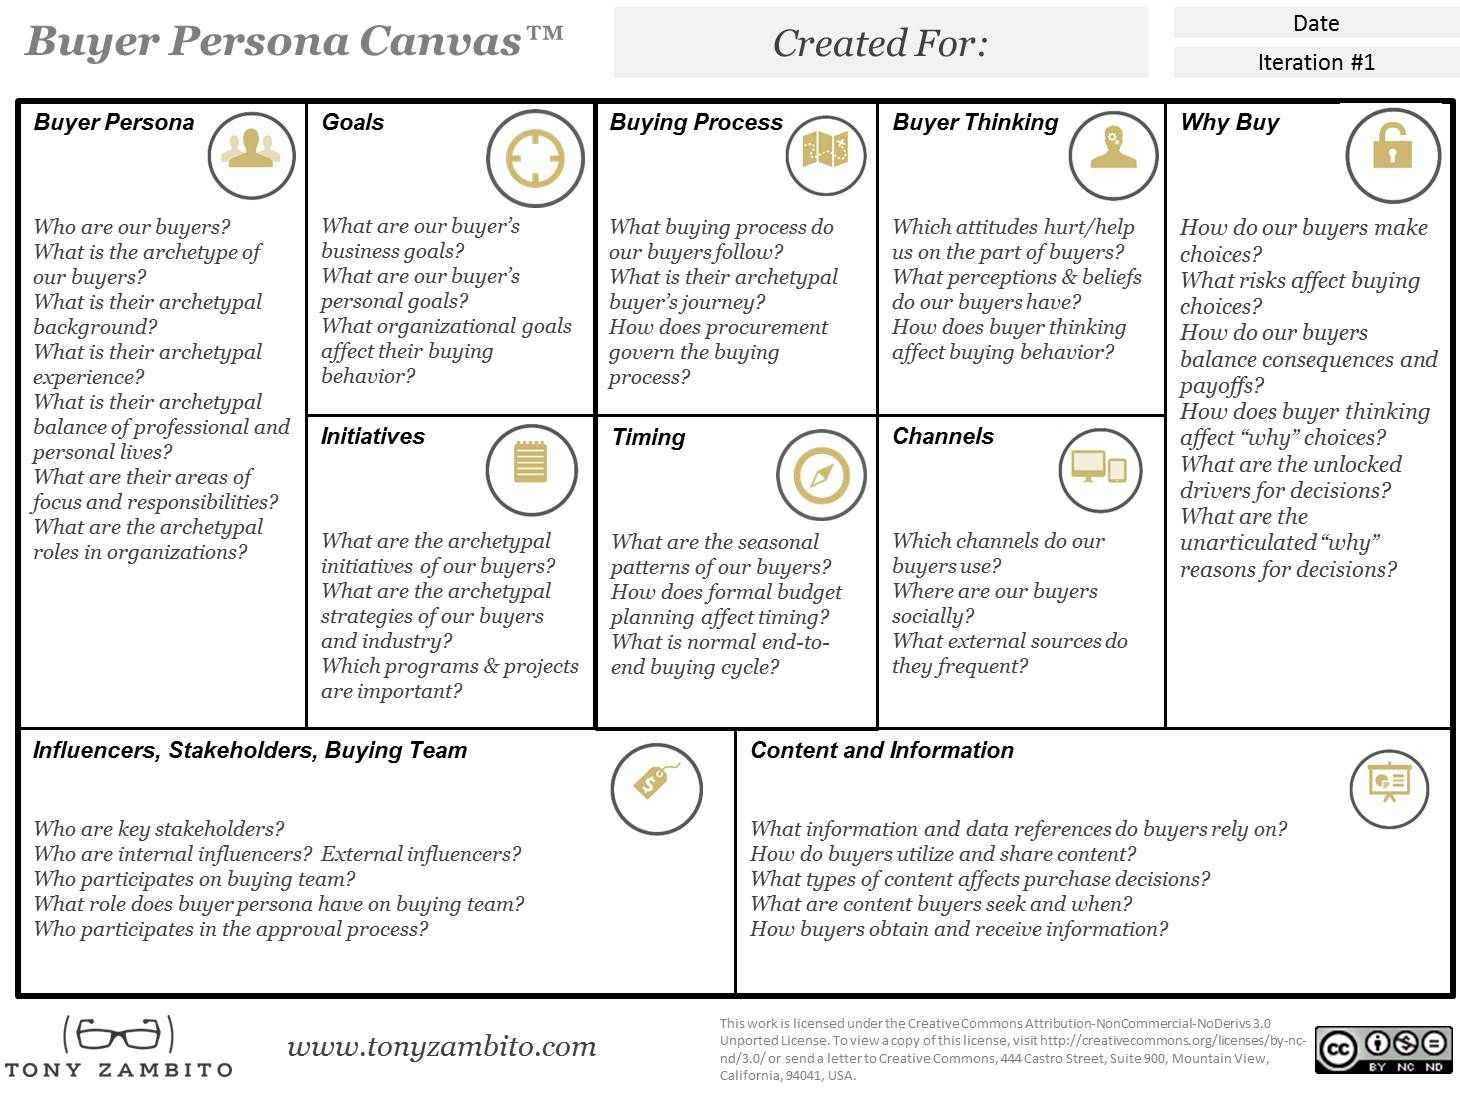 The Buyer Persona Canvas Is A Strategic Modeling To Focus On Ten